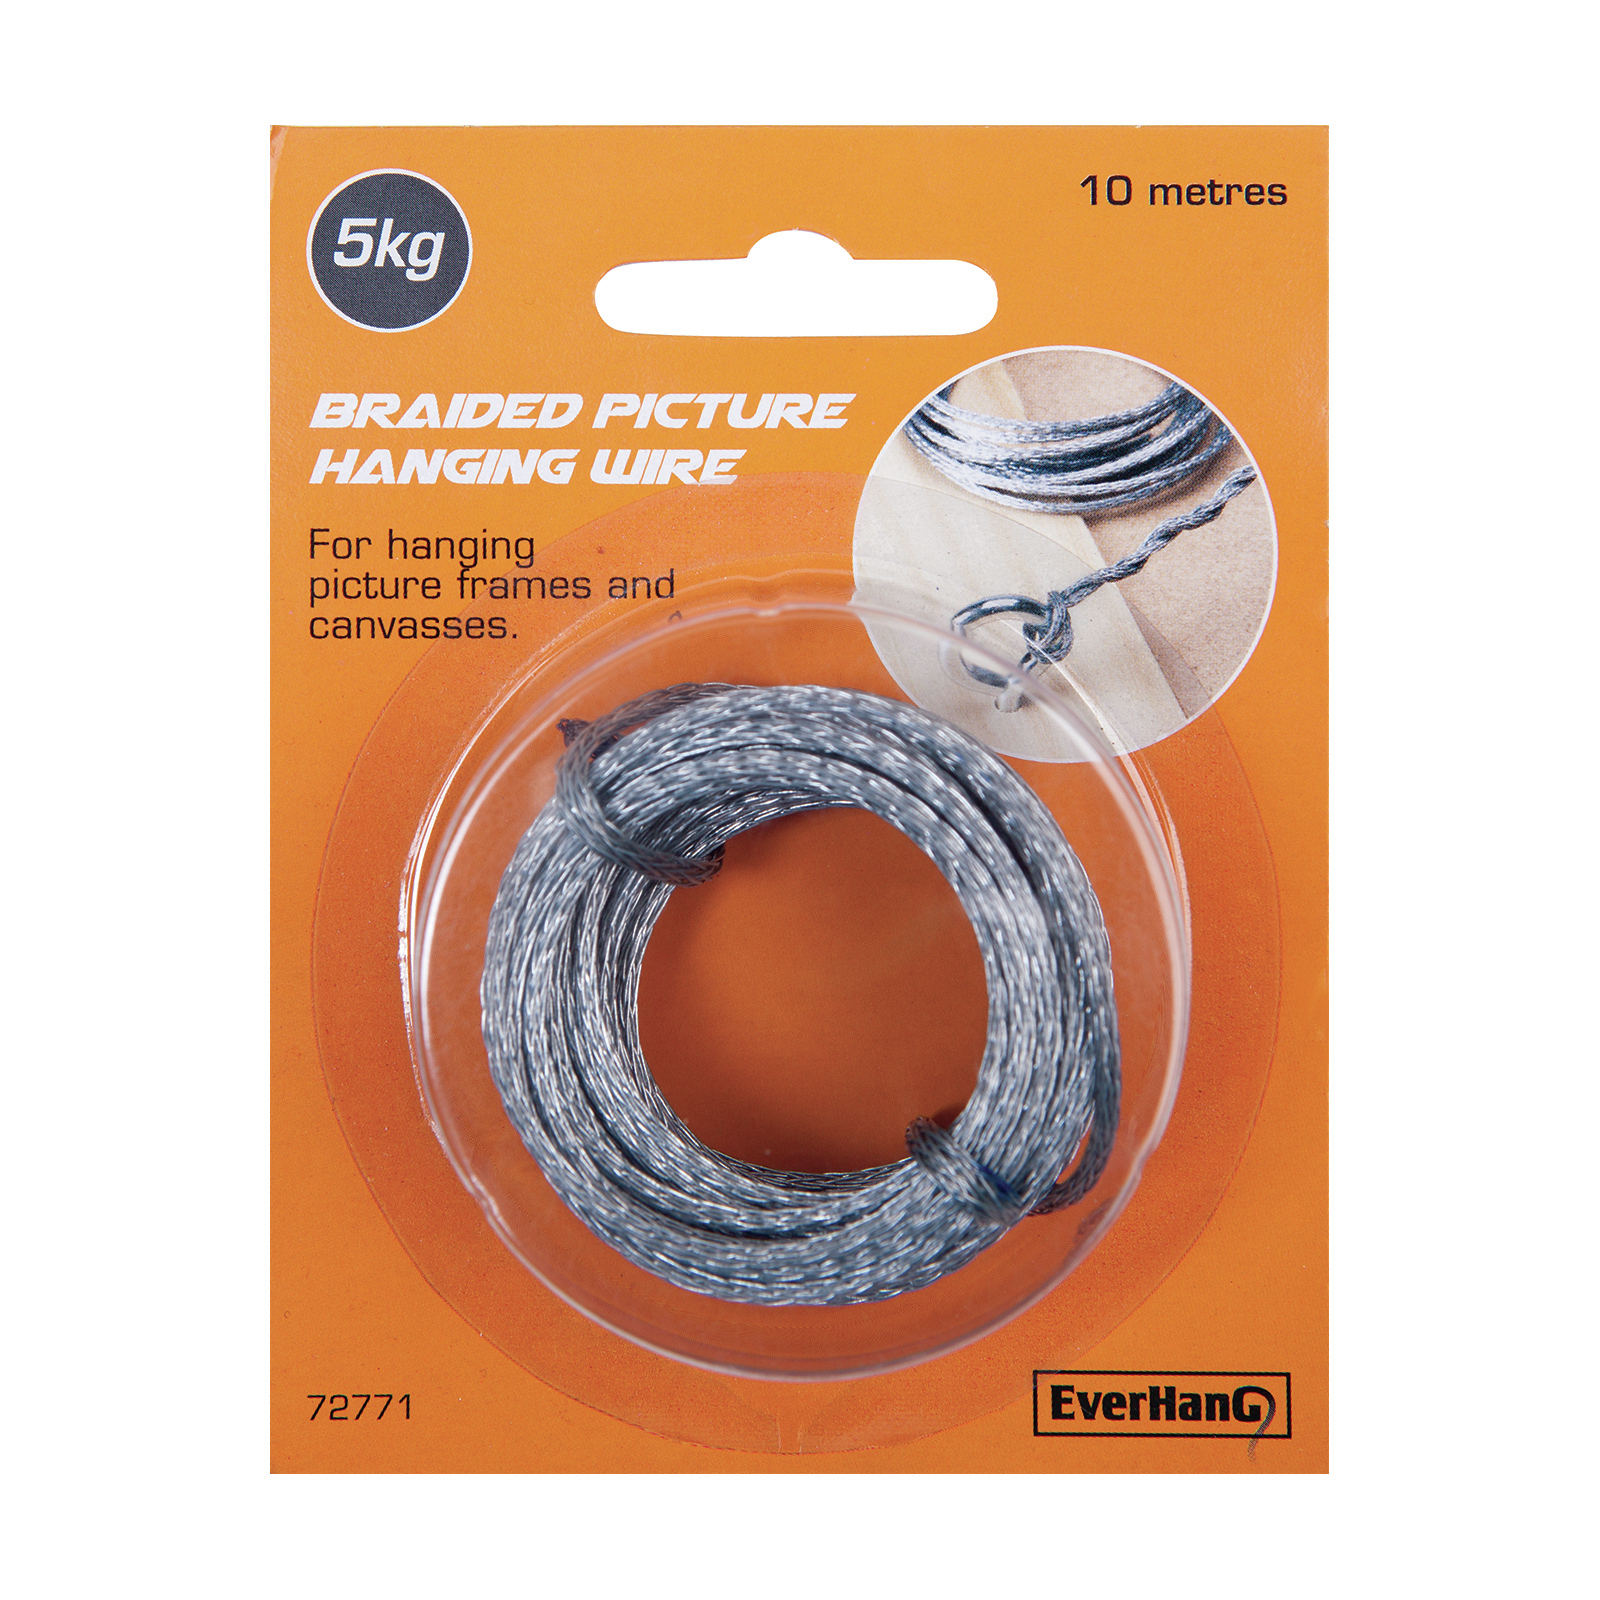 Everhang 10m 5kg Braided Picture Hanging Wire